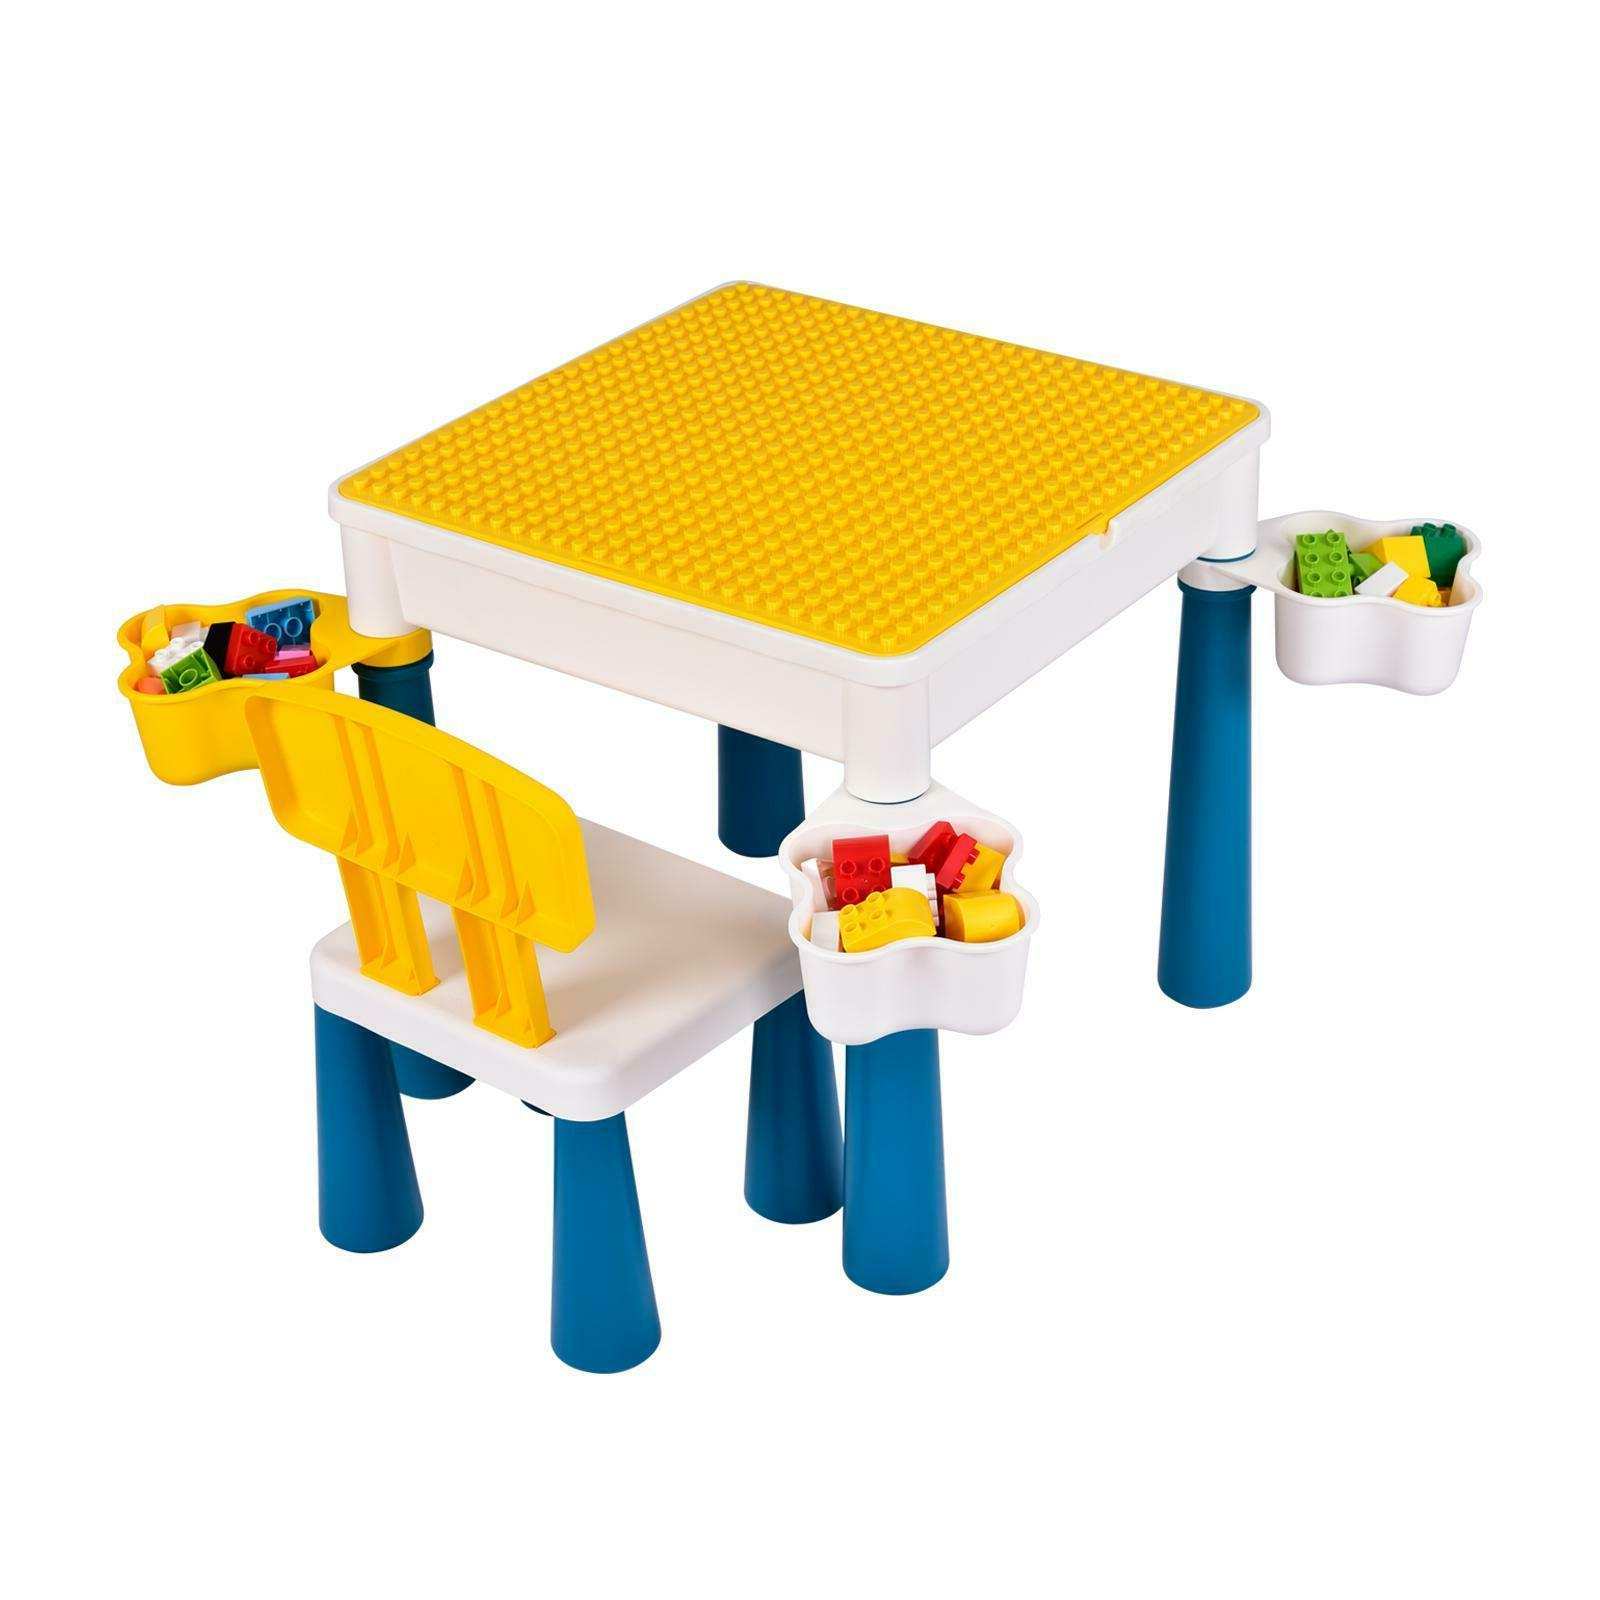 Activity Table For Kids Block Furniture Chair